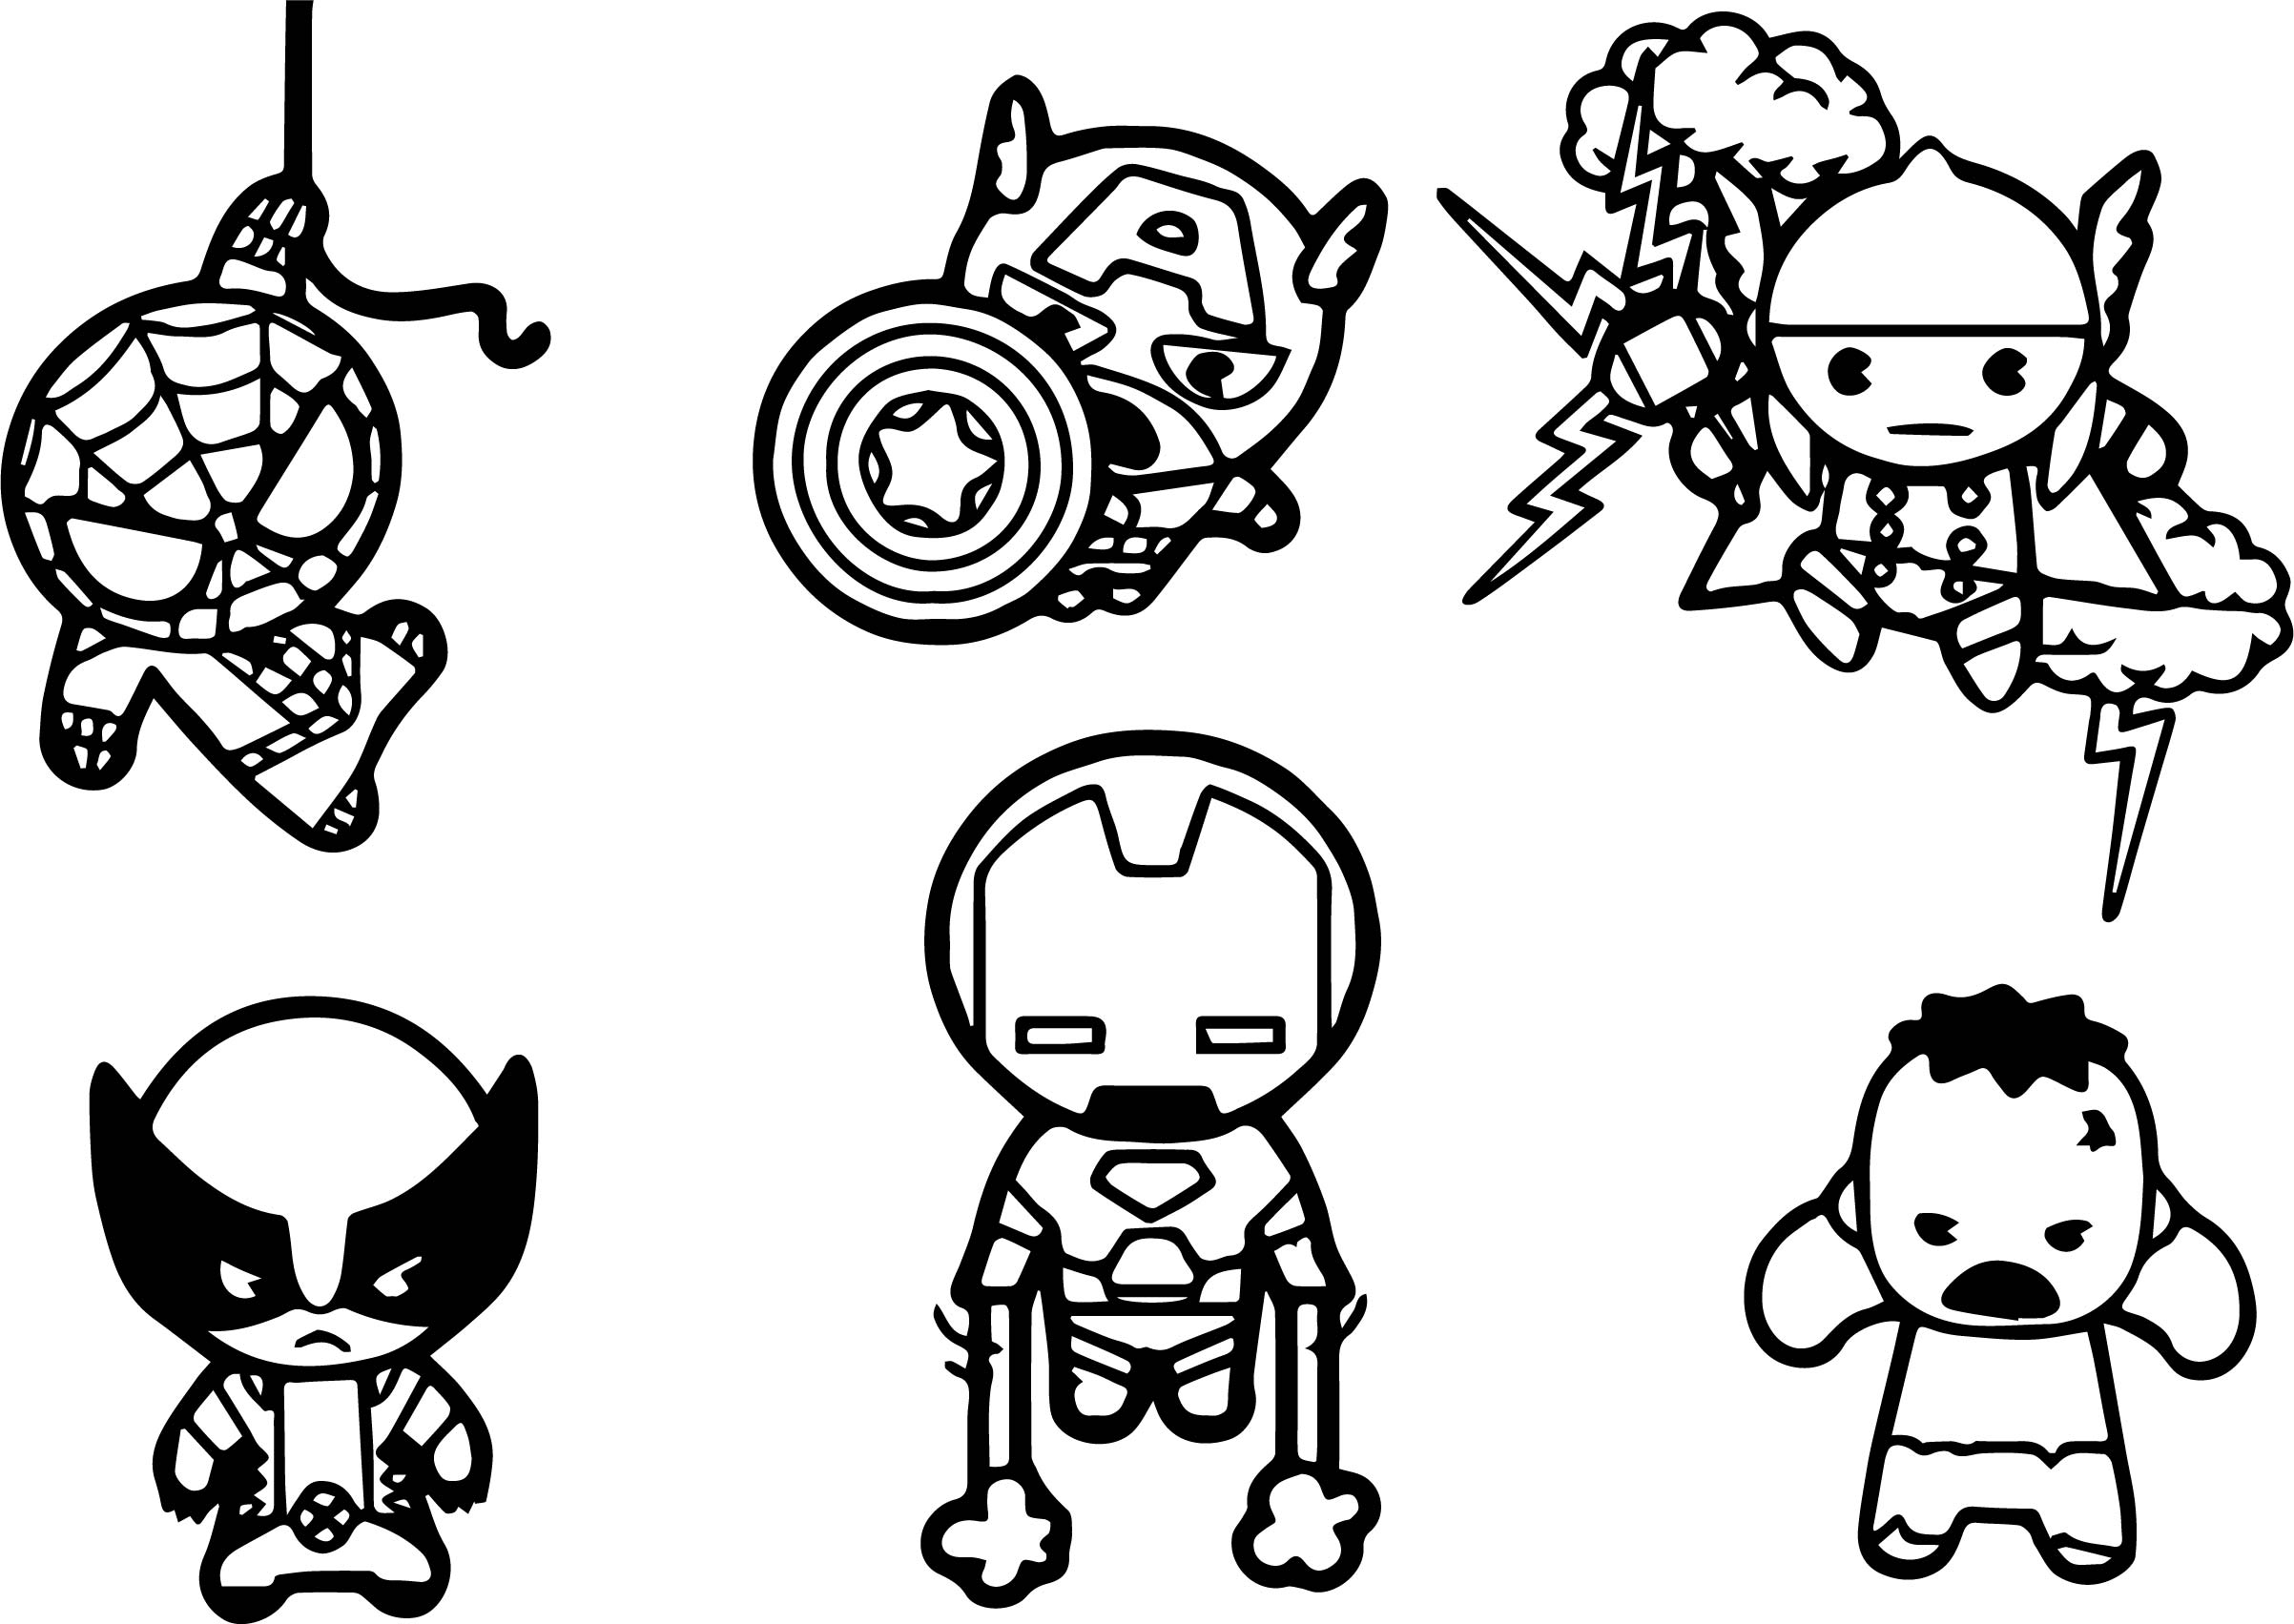 cute avengers coloring pages how to draw raccoon chibi avengers drawings avengers cute avengers pages coloring